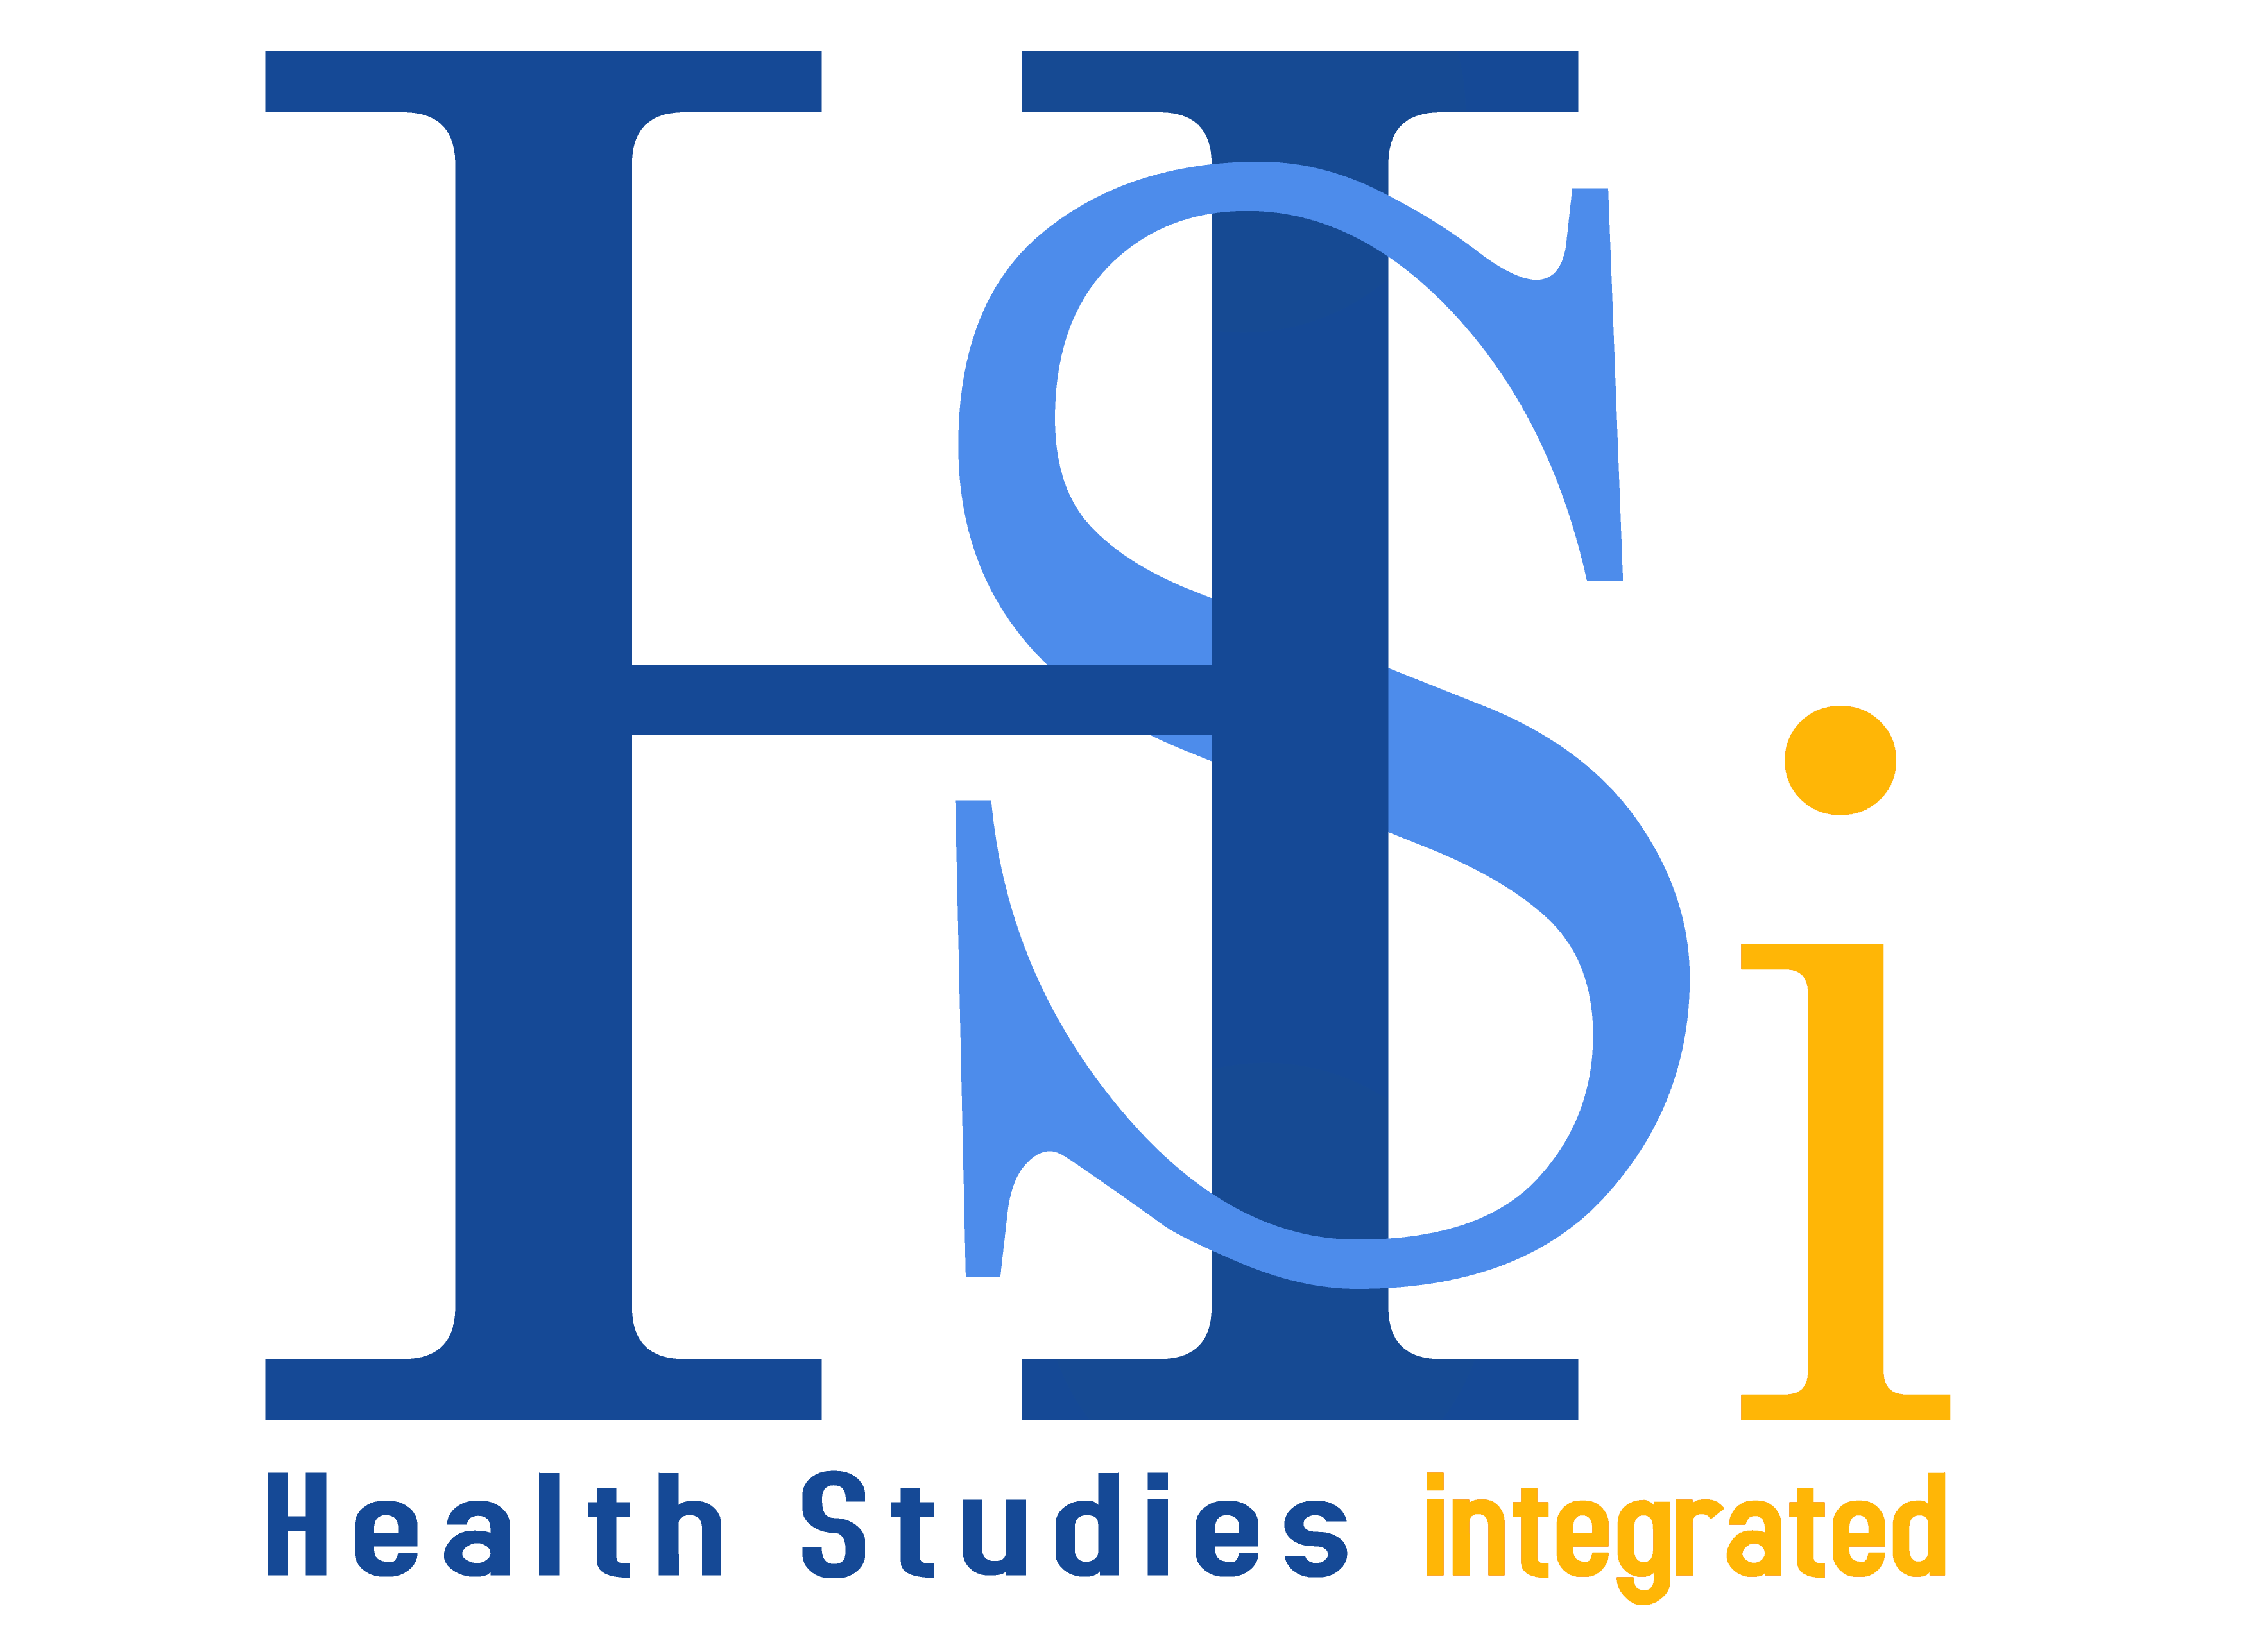 Health Studies – integrated (HSi)